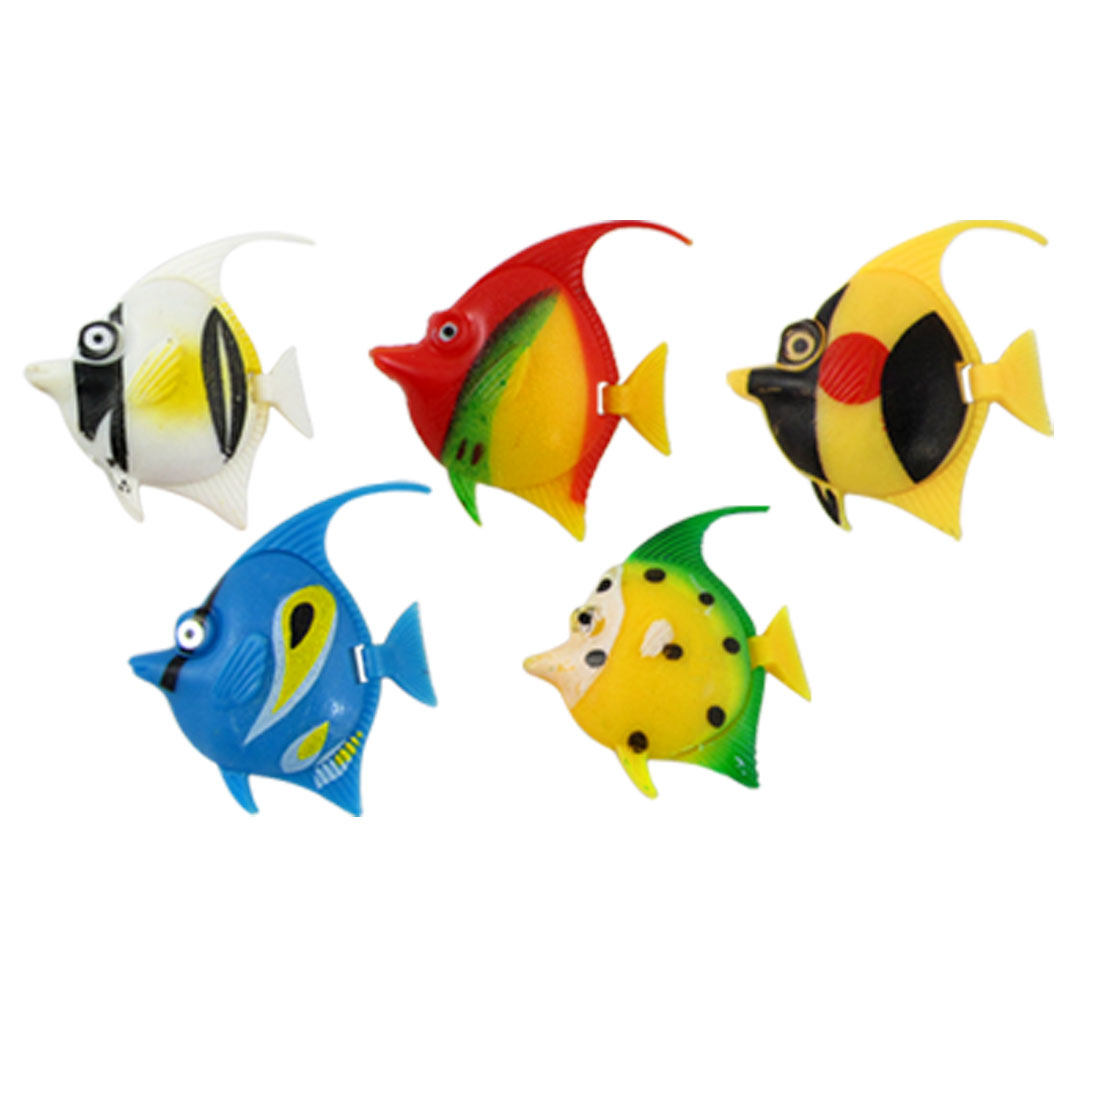 Colorful Plastic Swimming Tropical Fish Decor 5 Pcs for Aquarium